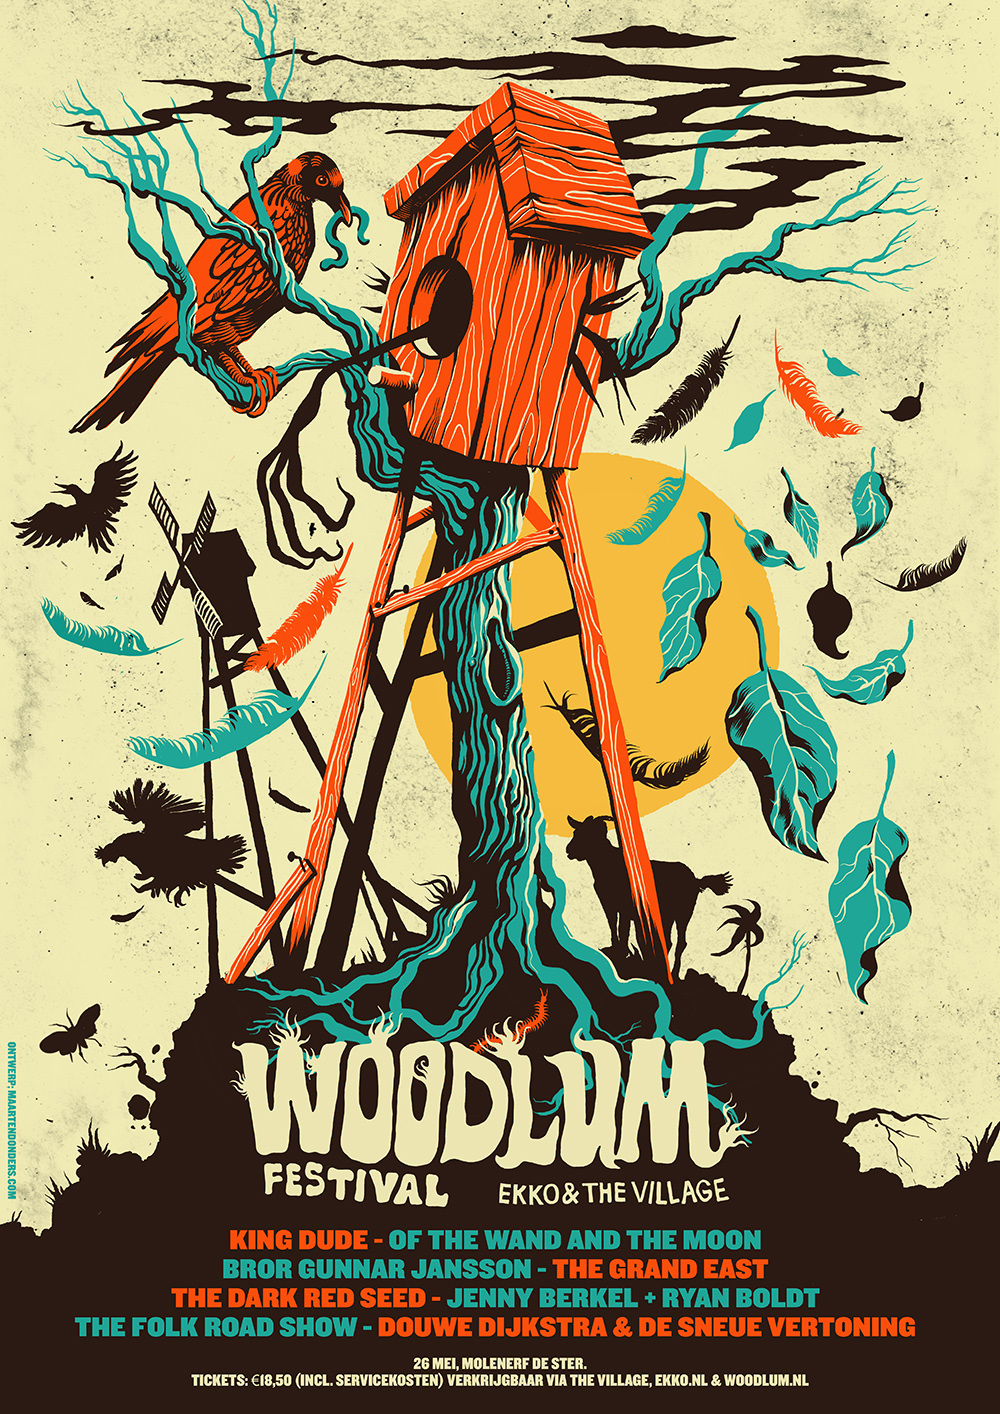 Woodlum Festival - Maarten Donders - artwork & illustration